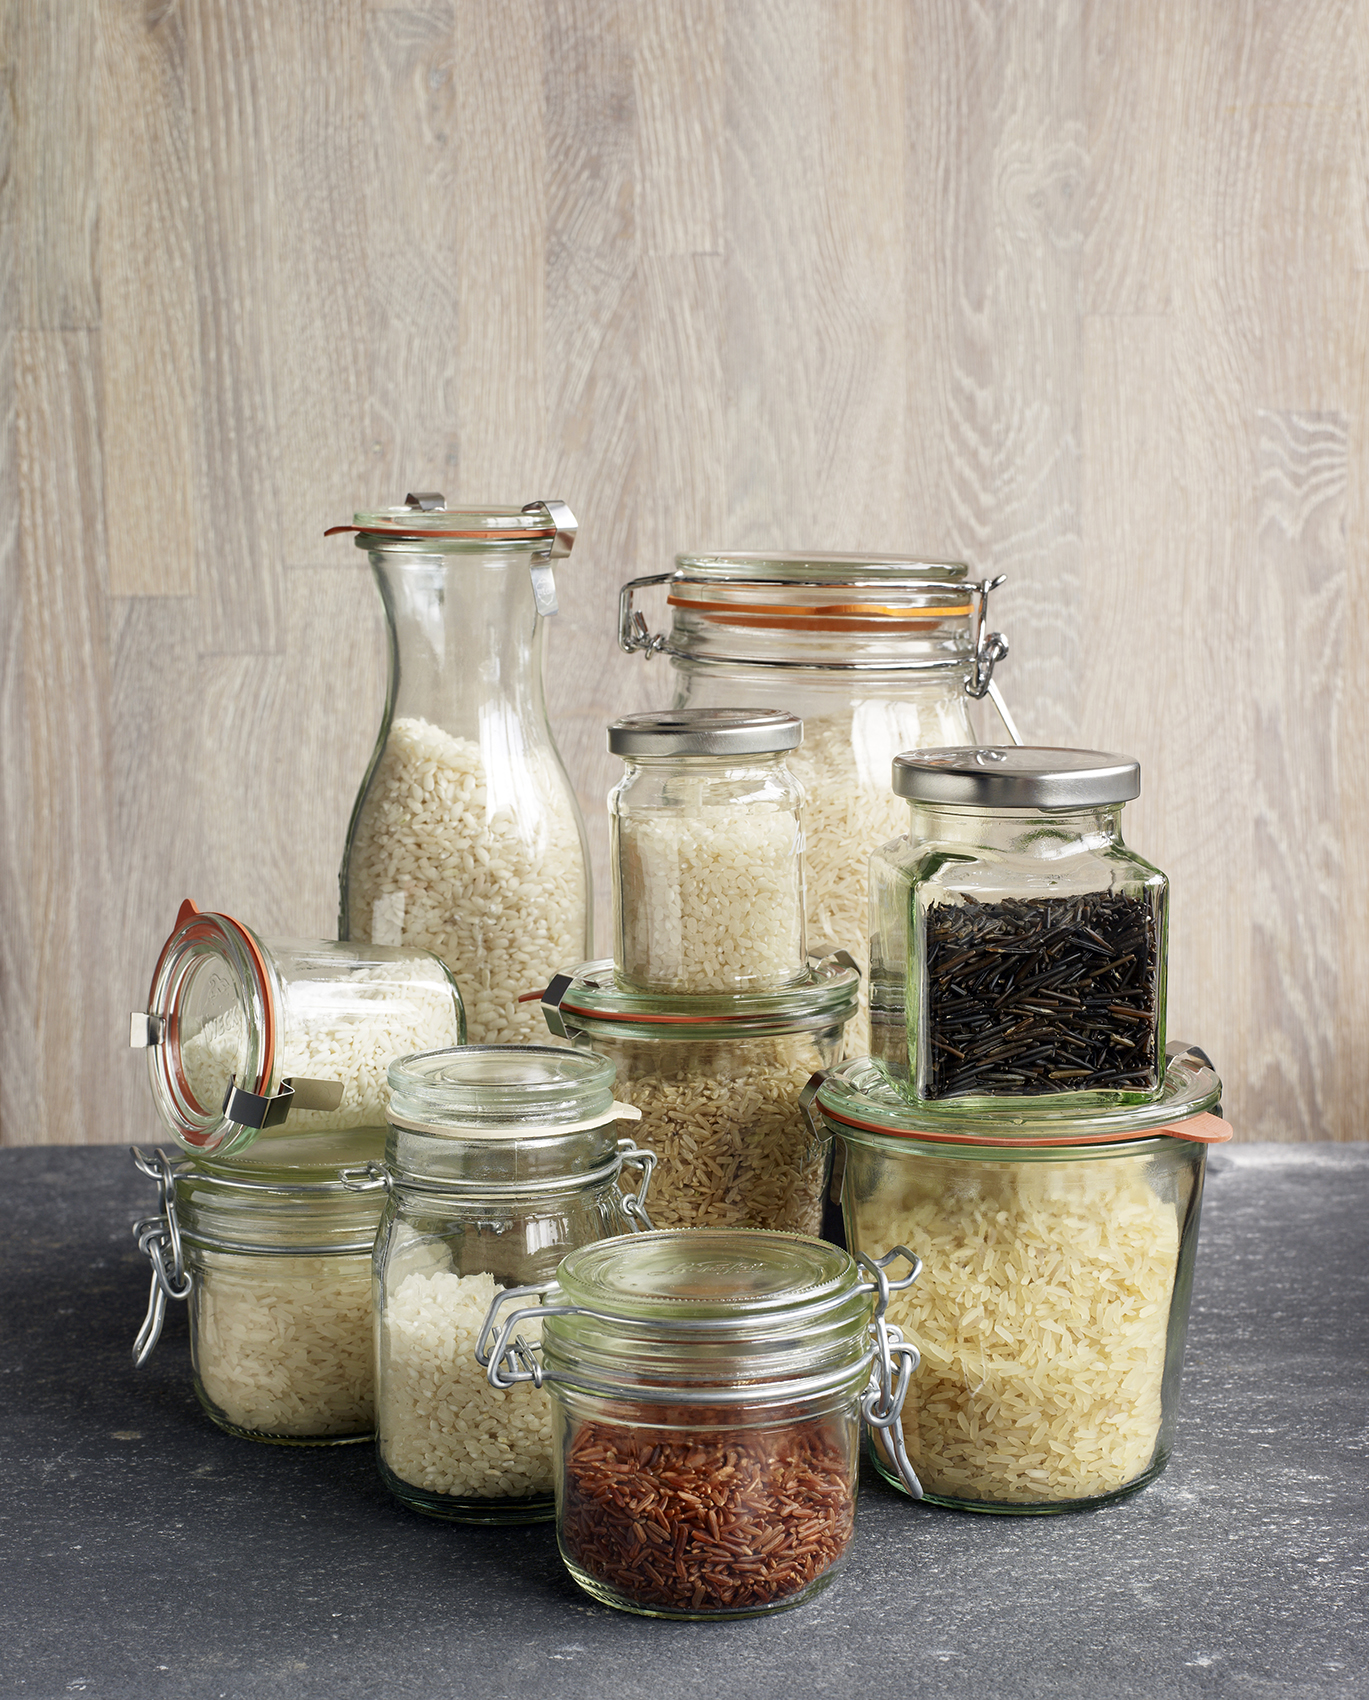 Glass jars containing different types of rice